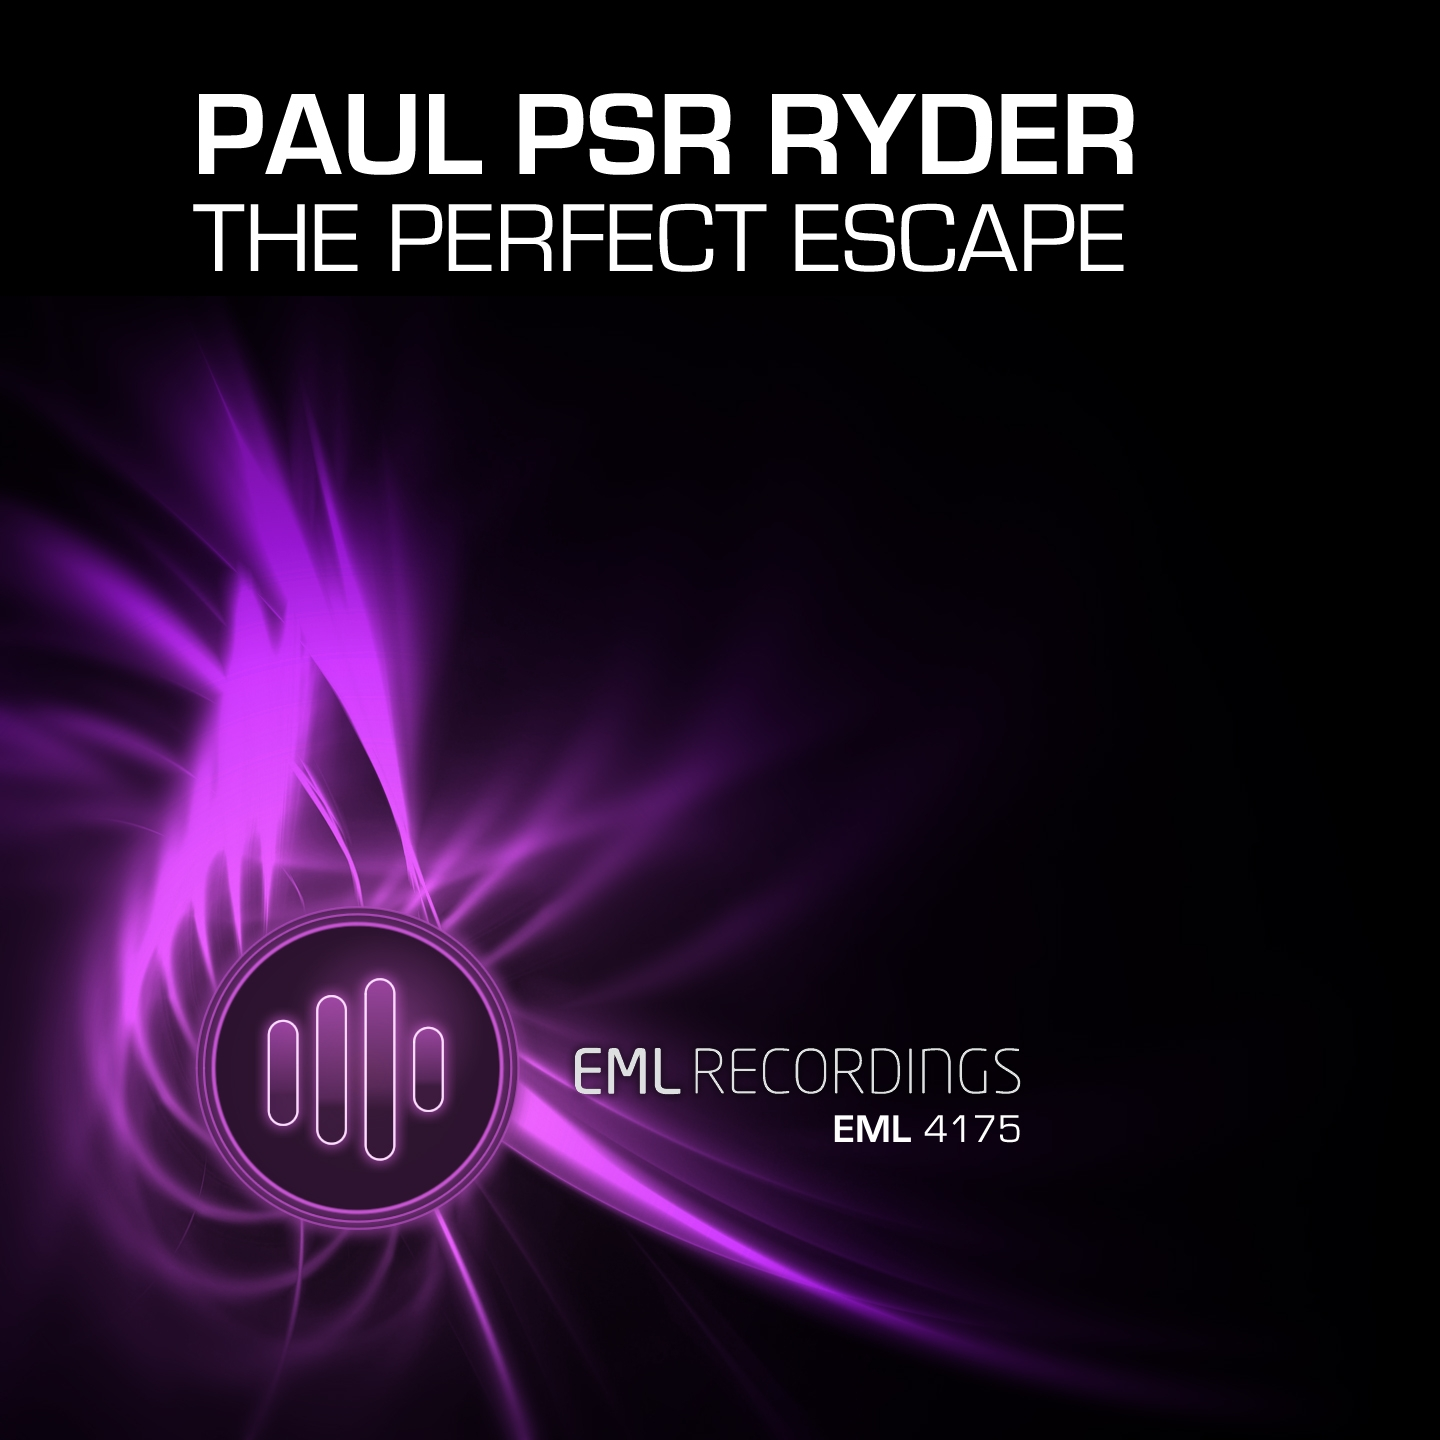 Paul Psr Ryder - The Perfect Escape